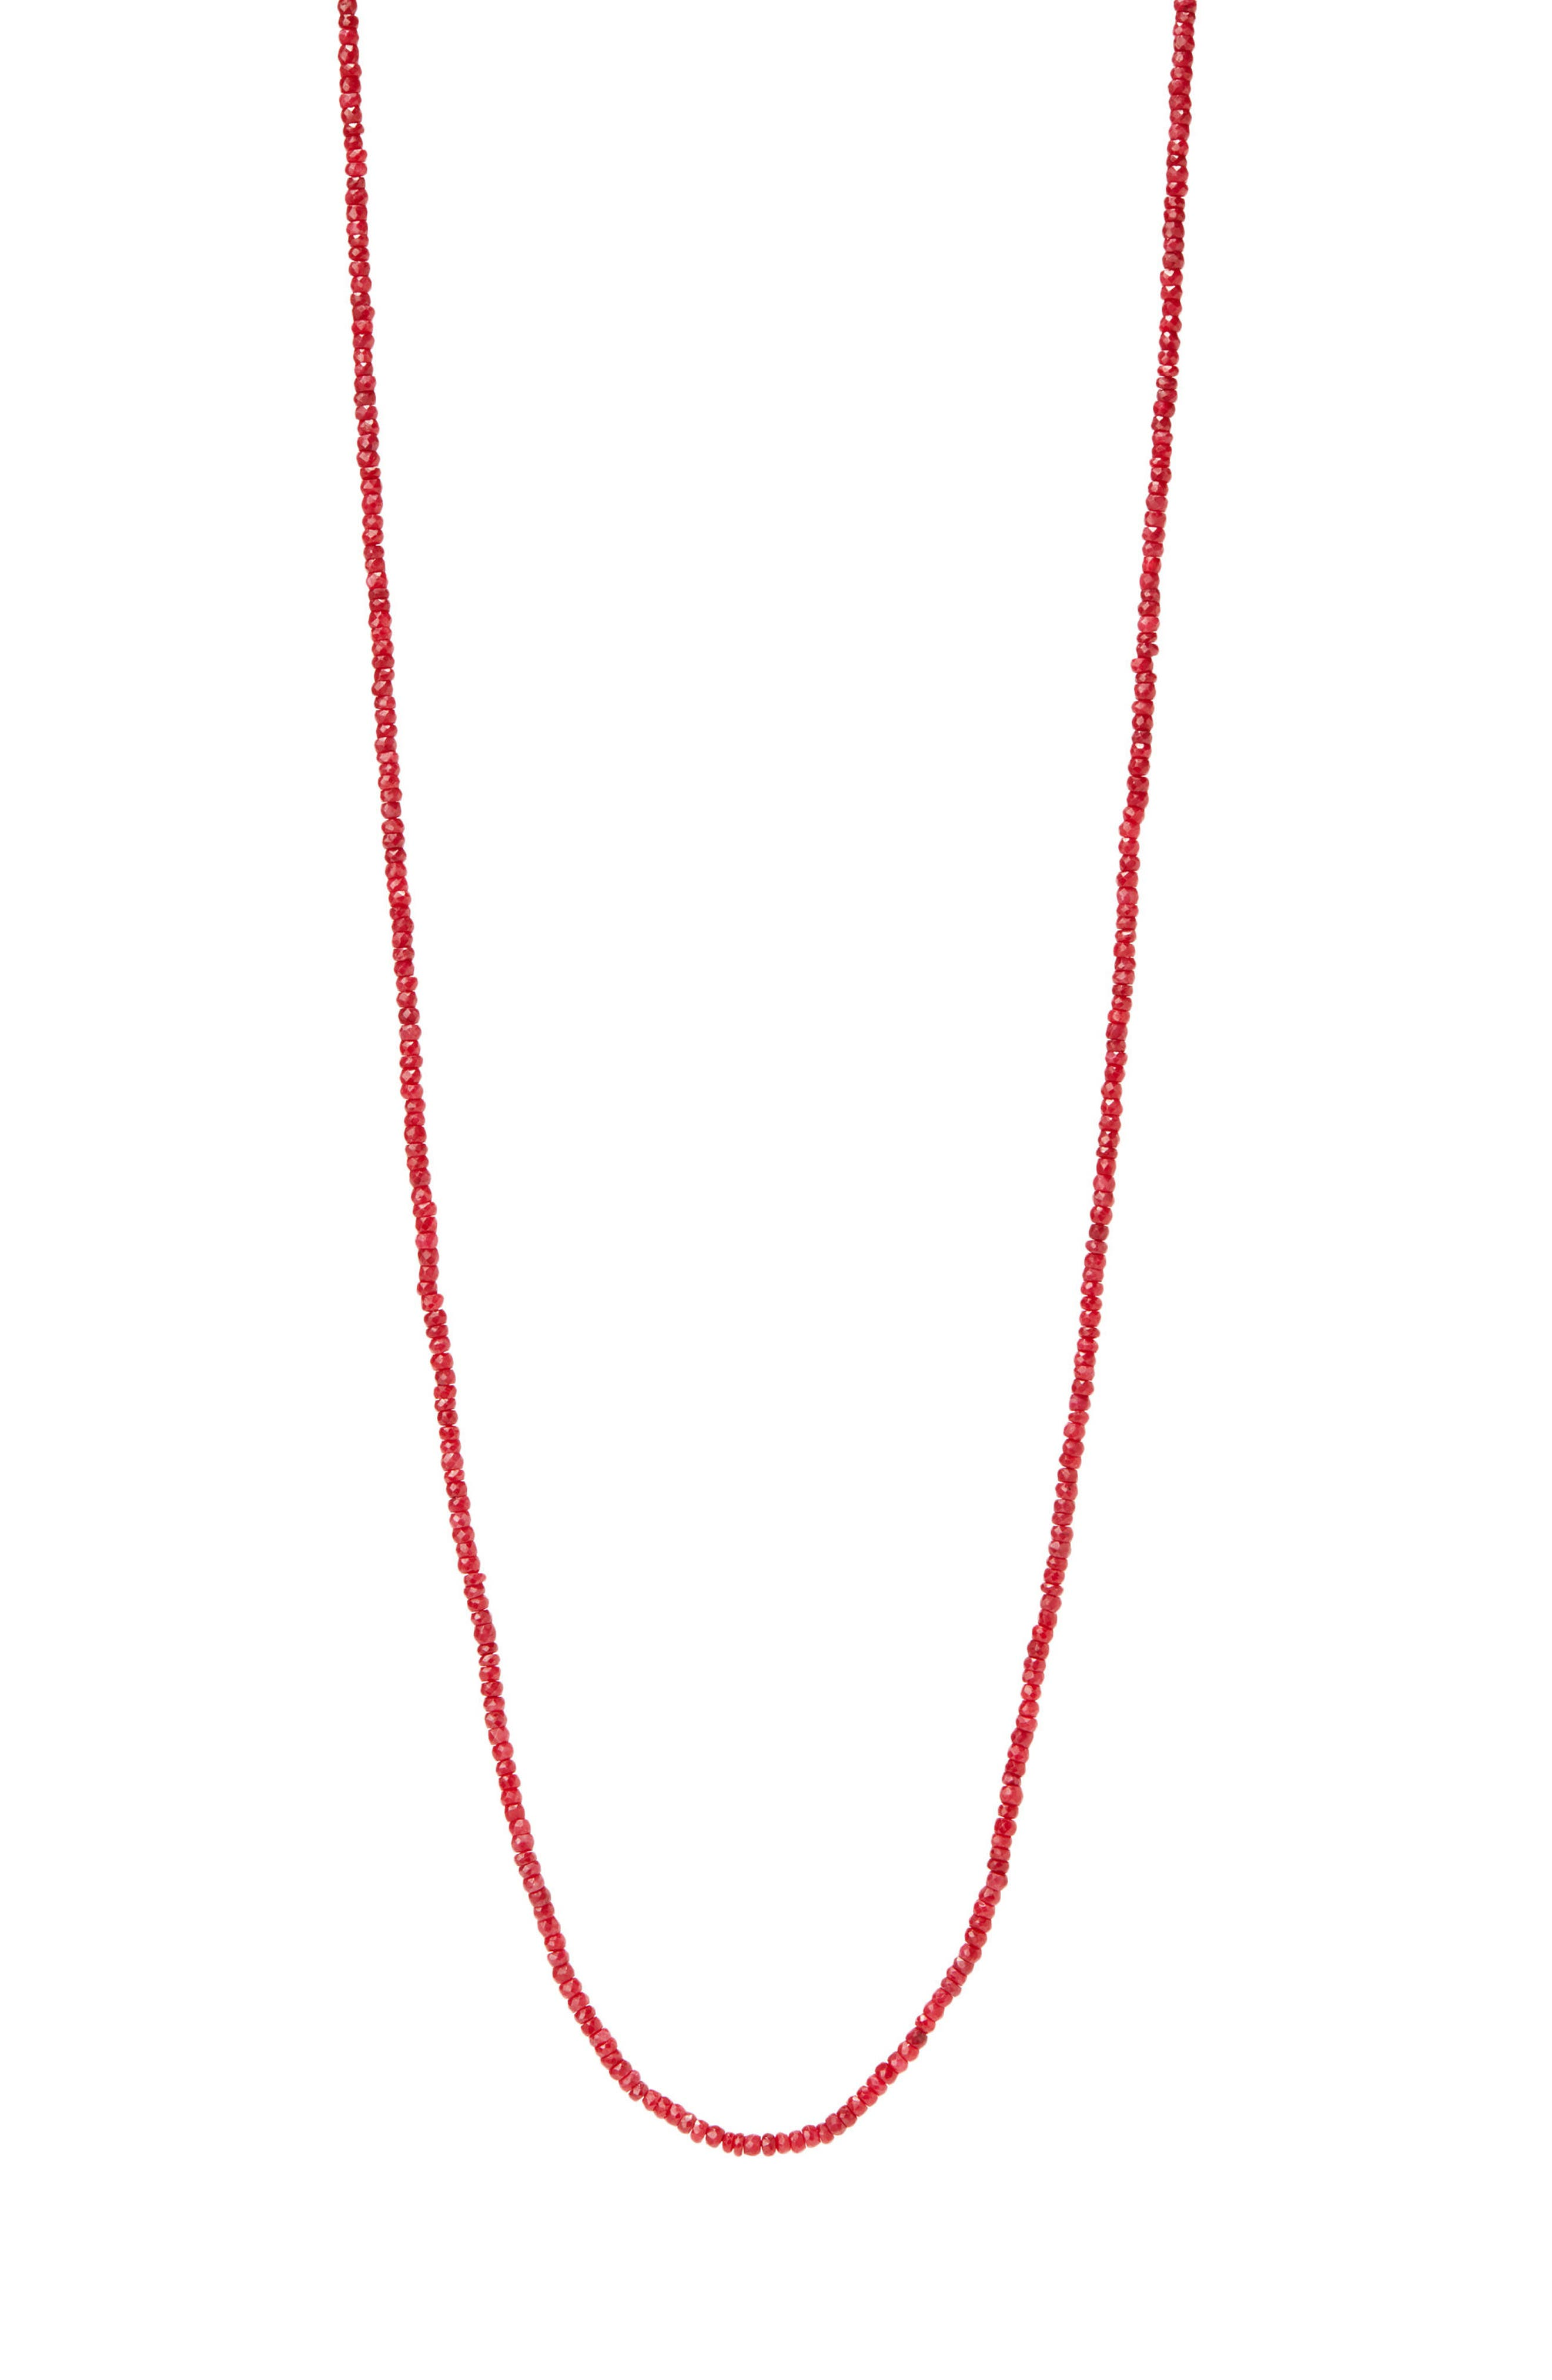 Topanga Gemstone Necklace,                         Main,                         color, Ruby